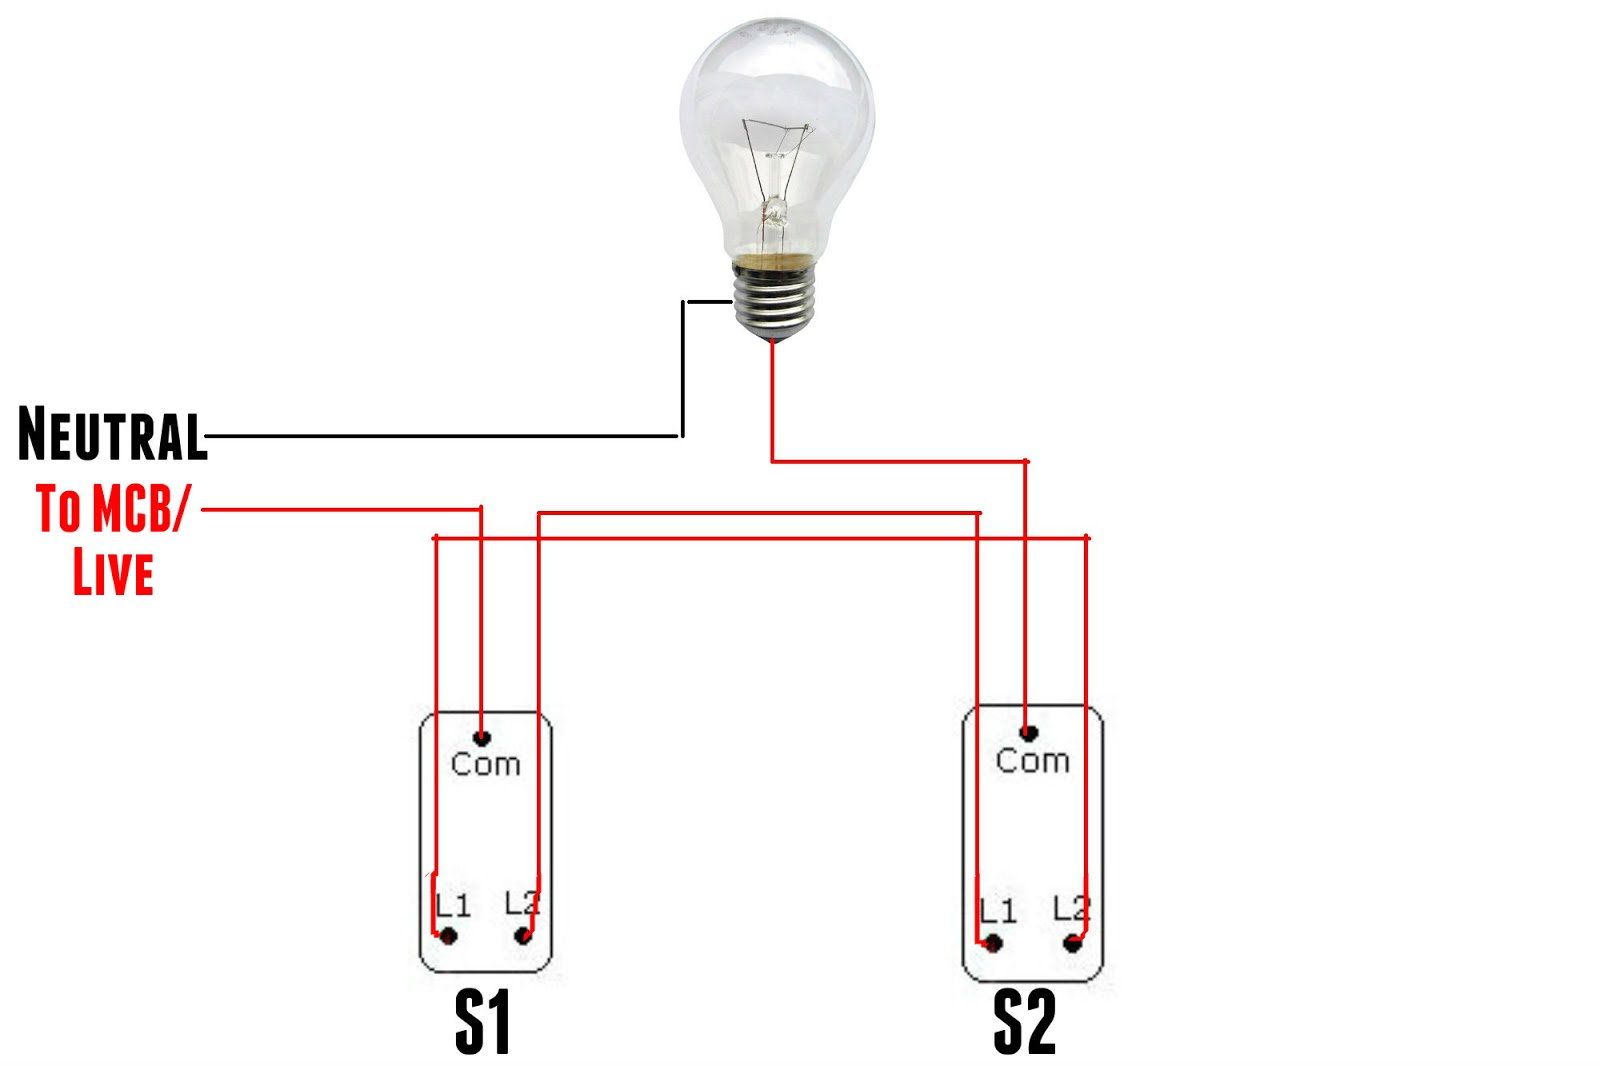 Wiring Up A 2 Way Dimmer Switch Wiring A Dimmer Switch 2 Way How